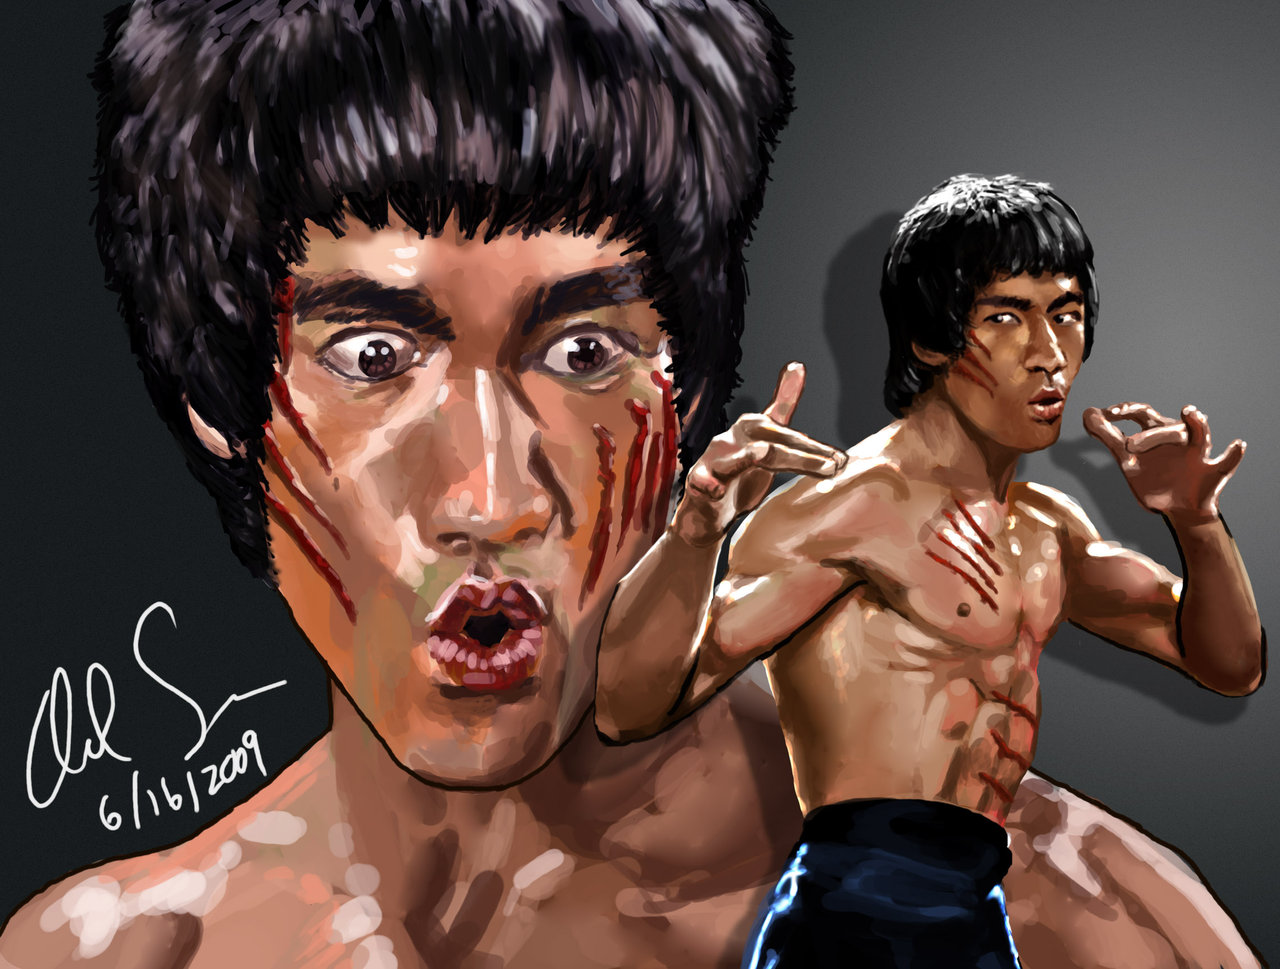 Bruce-Lee-Enter-the-Dragon-by-osx-mkx-deviantart-com-on-deviantART-wallpaper-wp424264-1